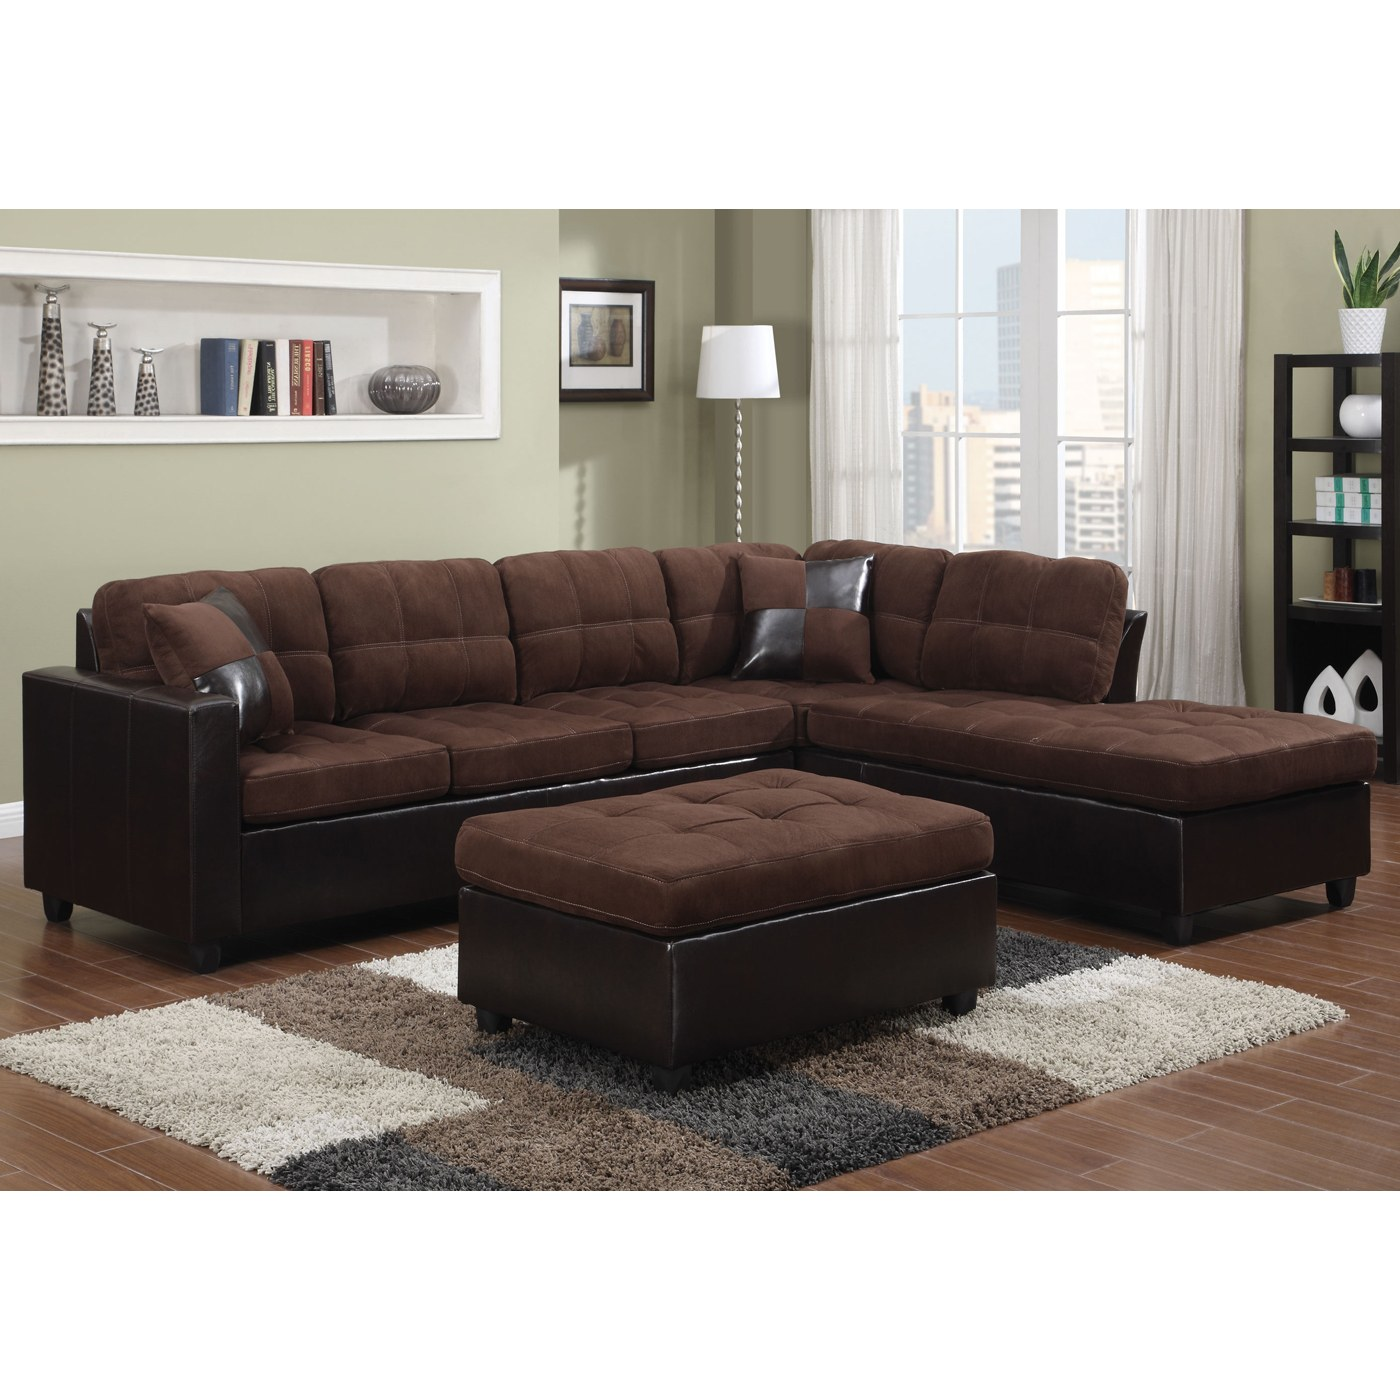 Brilliant Mallory Microfiber Sectional With Chocolate Microfiber Dark Brown Leather Like Vinyl Upholstery By Coaster Fine Furniture Uwap Interior Chair Design Uwaporg